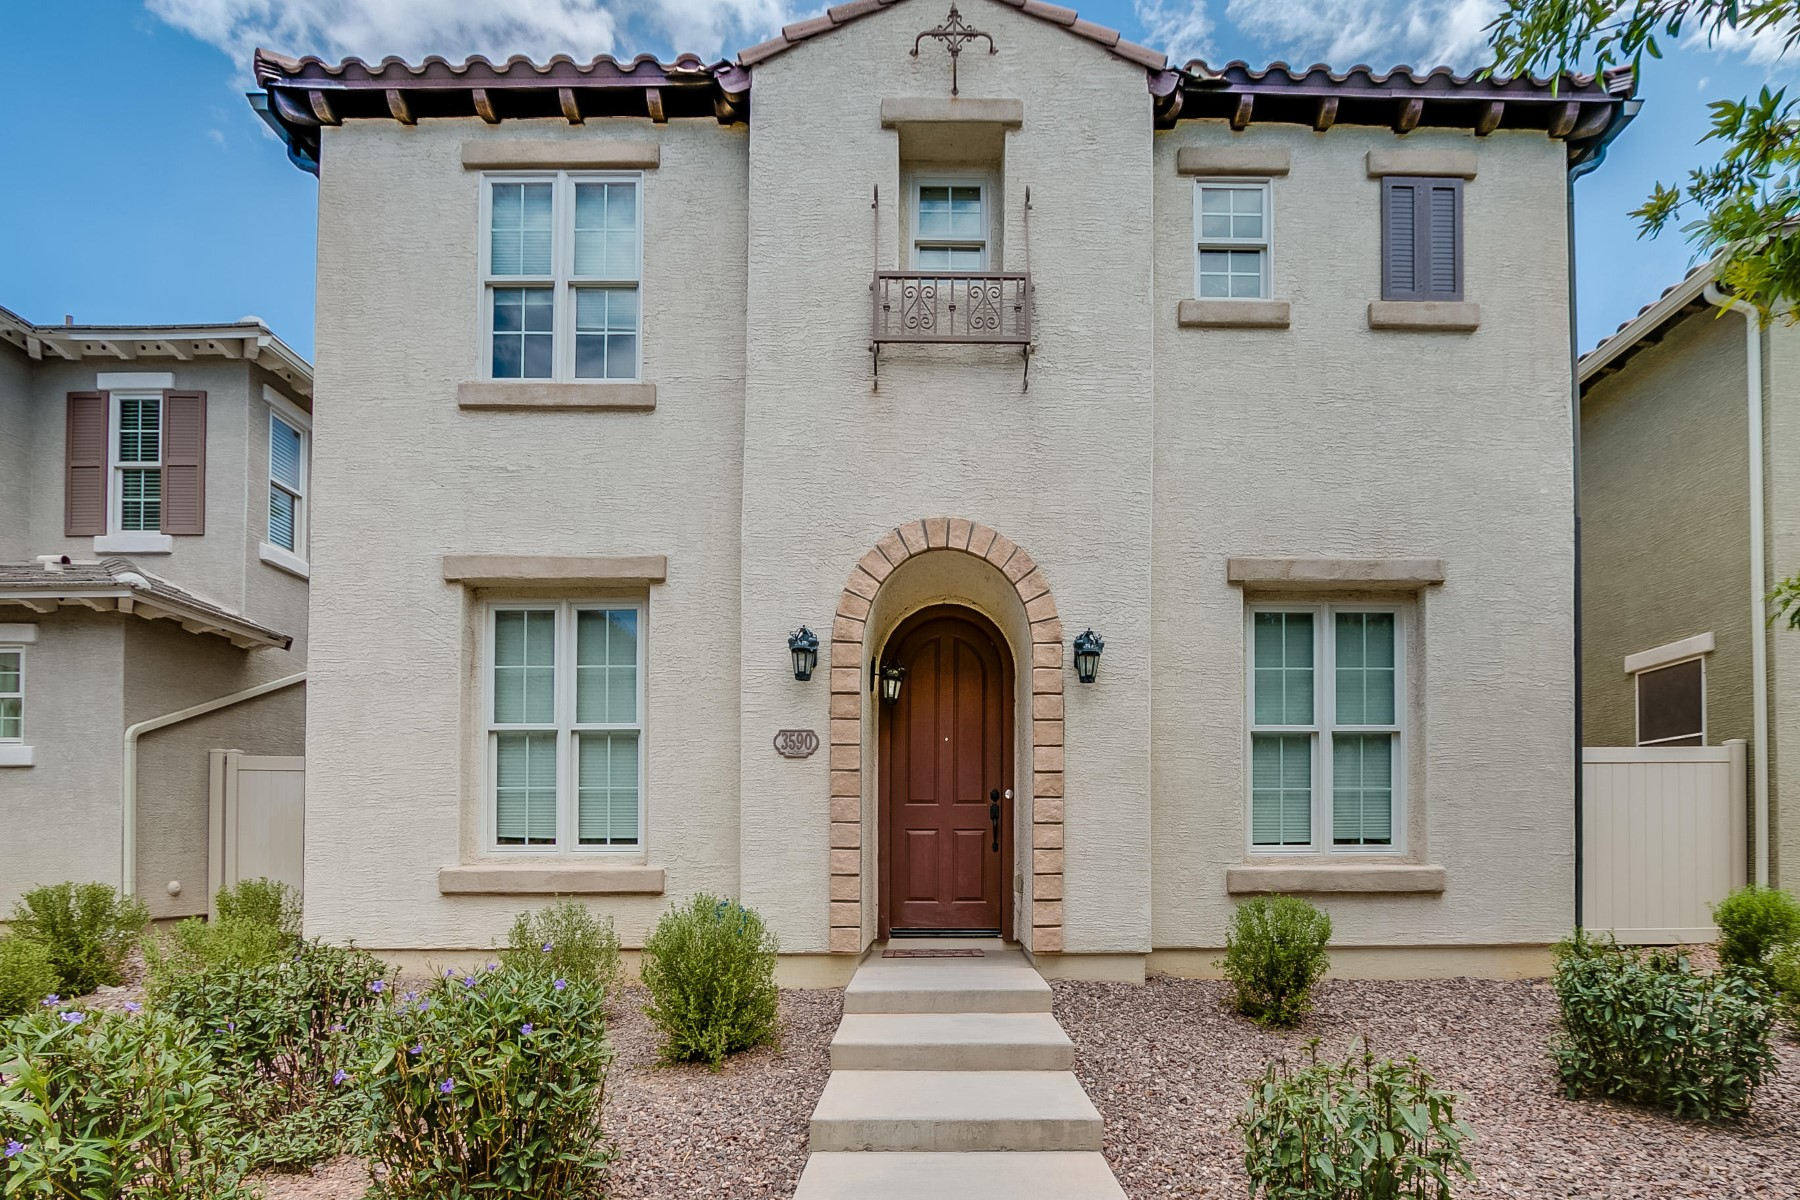 Single Family Homes for Sale at Power Ranch in Gilbert 3590 S ROY ROGERS WAY Gilbert, Arizona 85297 United States